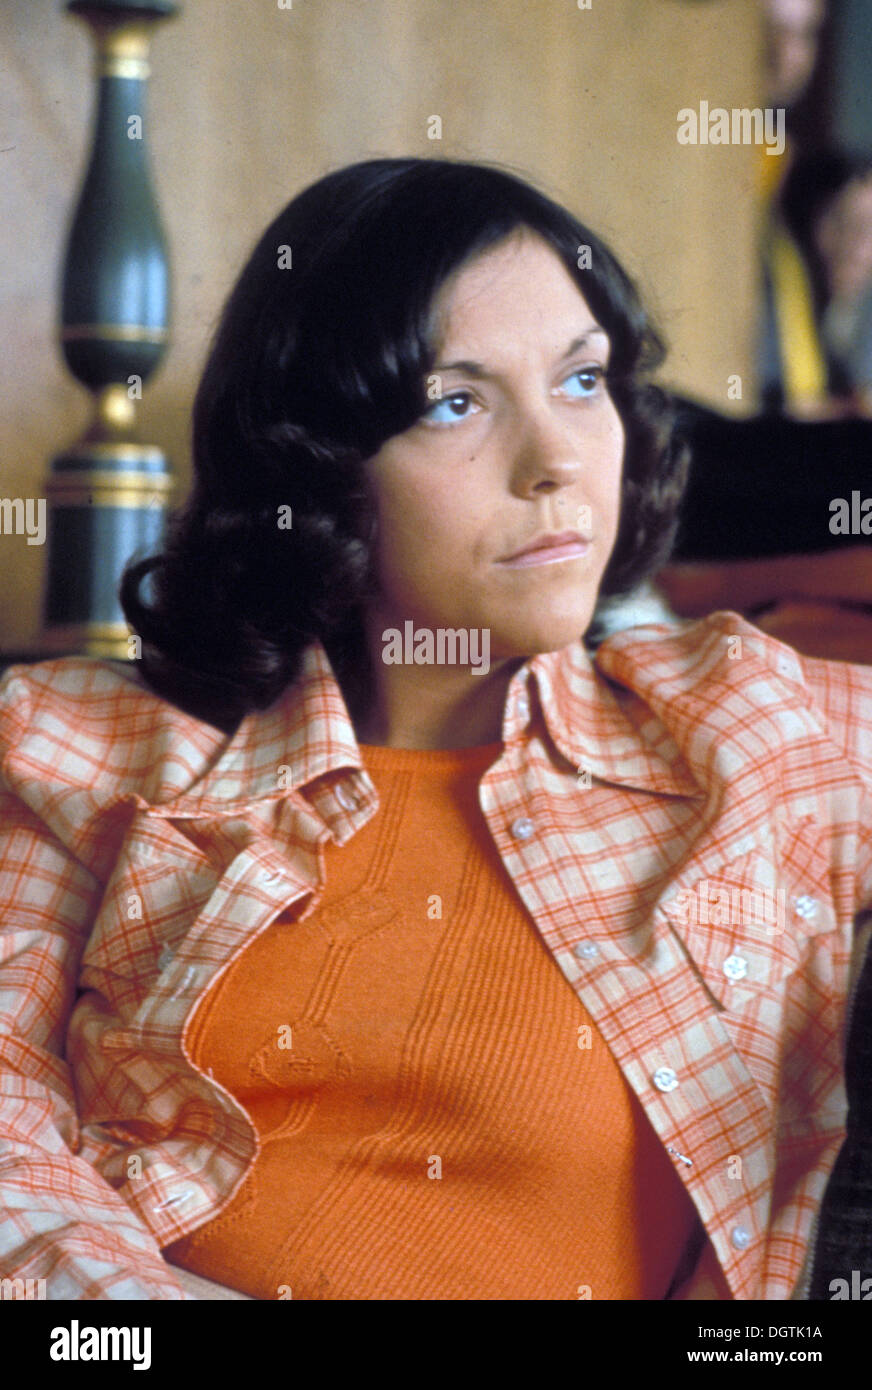 https://c8.alamy.com/comp/DGTK1A/karen-carpenter-1950-1983-american-singer-about-1976-photo-laurens-DGTK1A.jpg